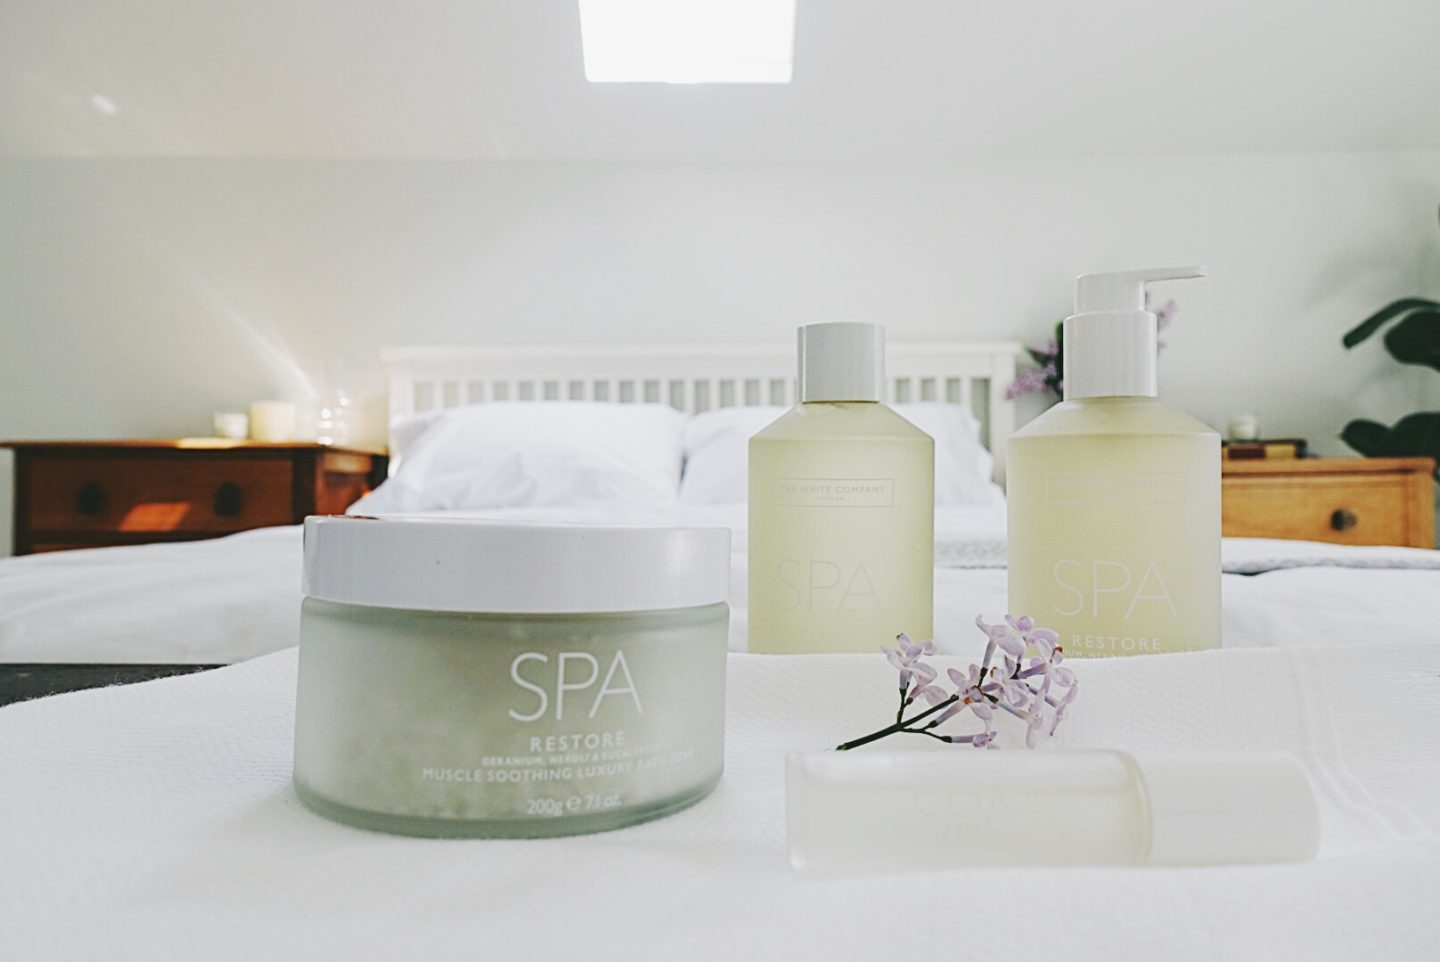 Creating the hotel feel at home: The White Company spa luxuries